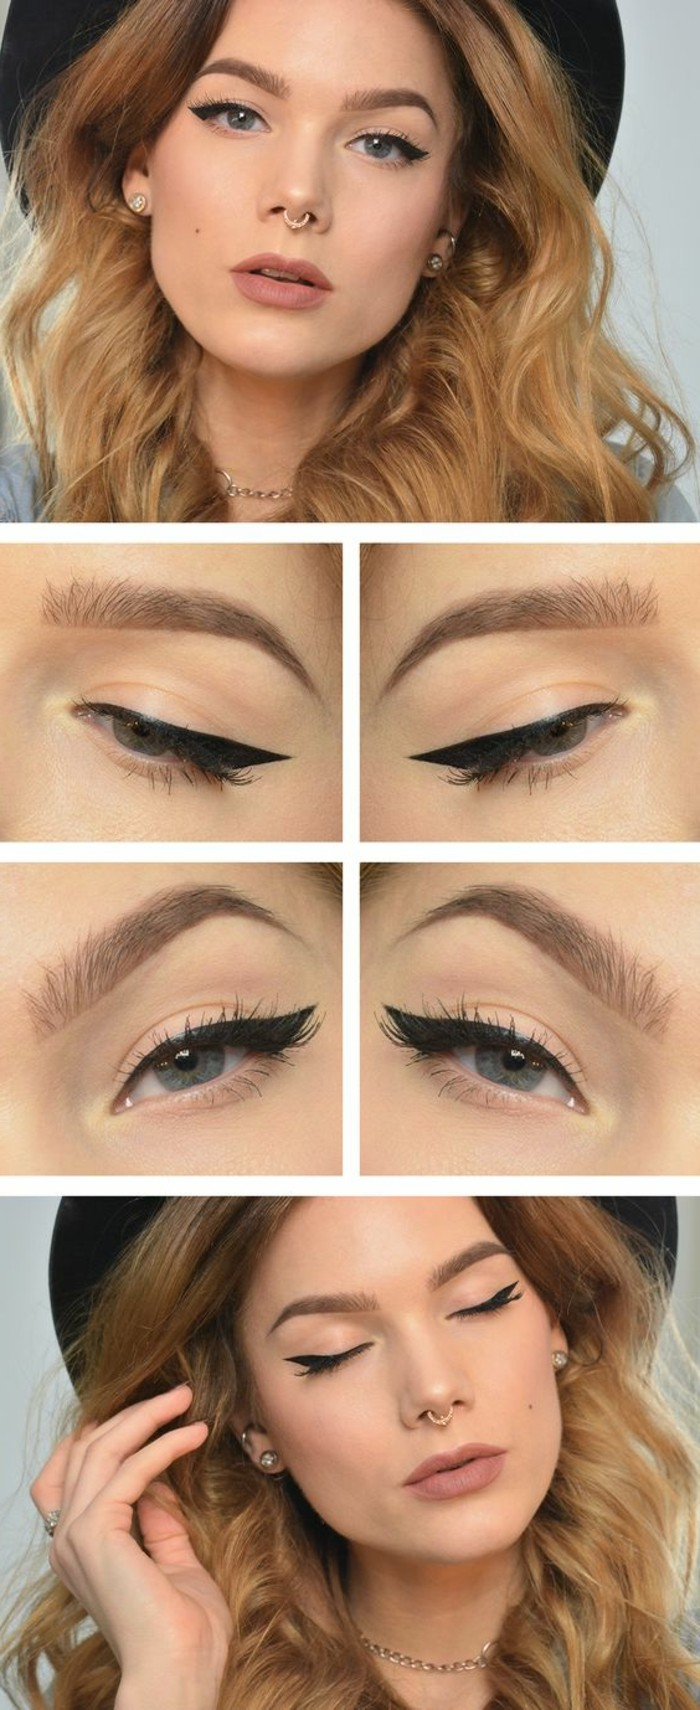 maquillage-yeux-de-chat-maquillage-yeux-bleus-eyeliner